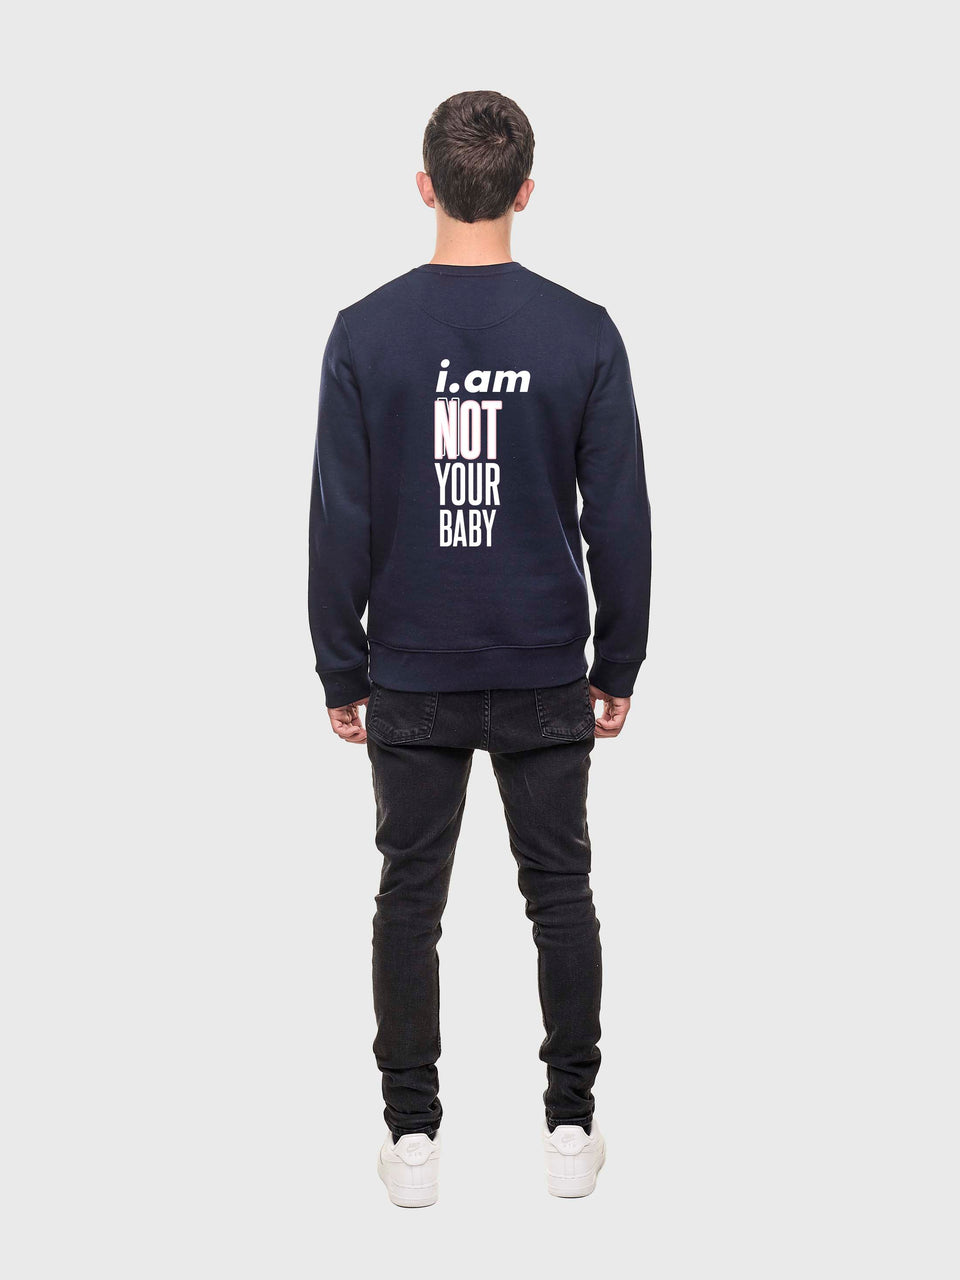 Not your baby - Navy - unisex sweatshirt